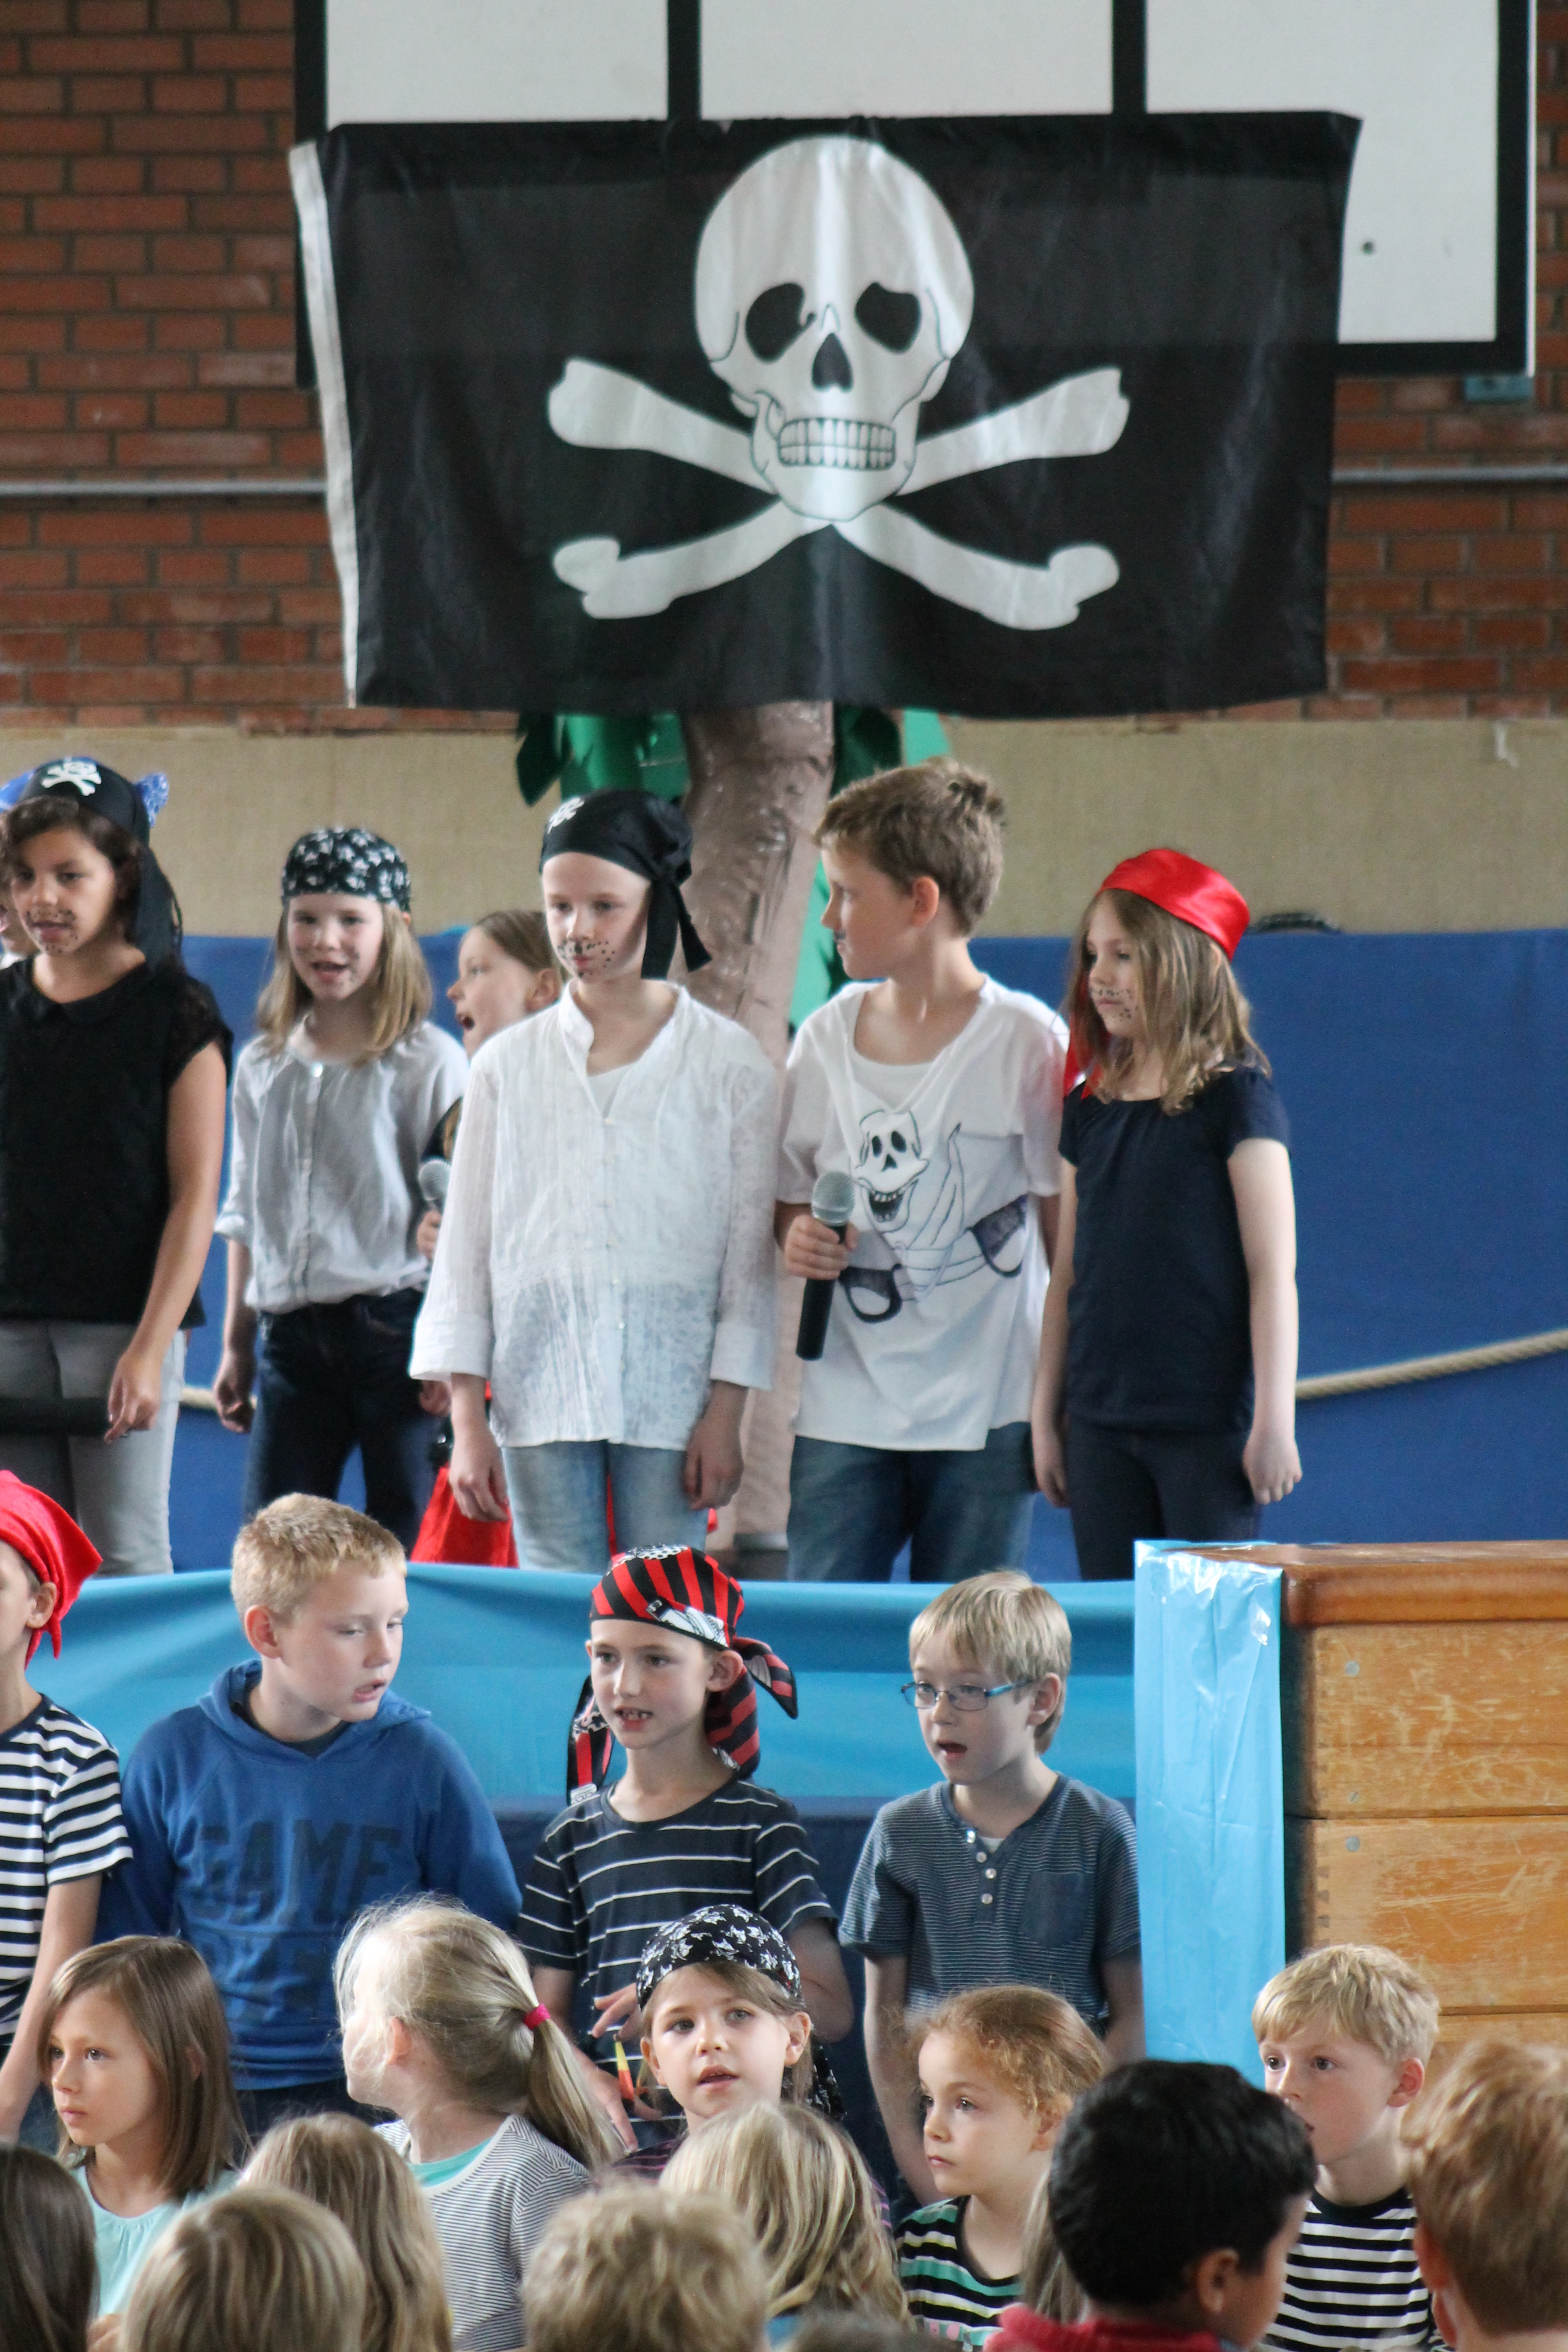 piratenmusical-kreuzbergschule-bonn-04